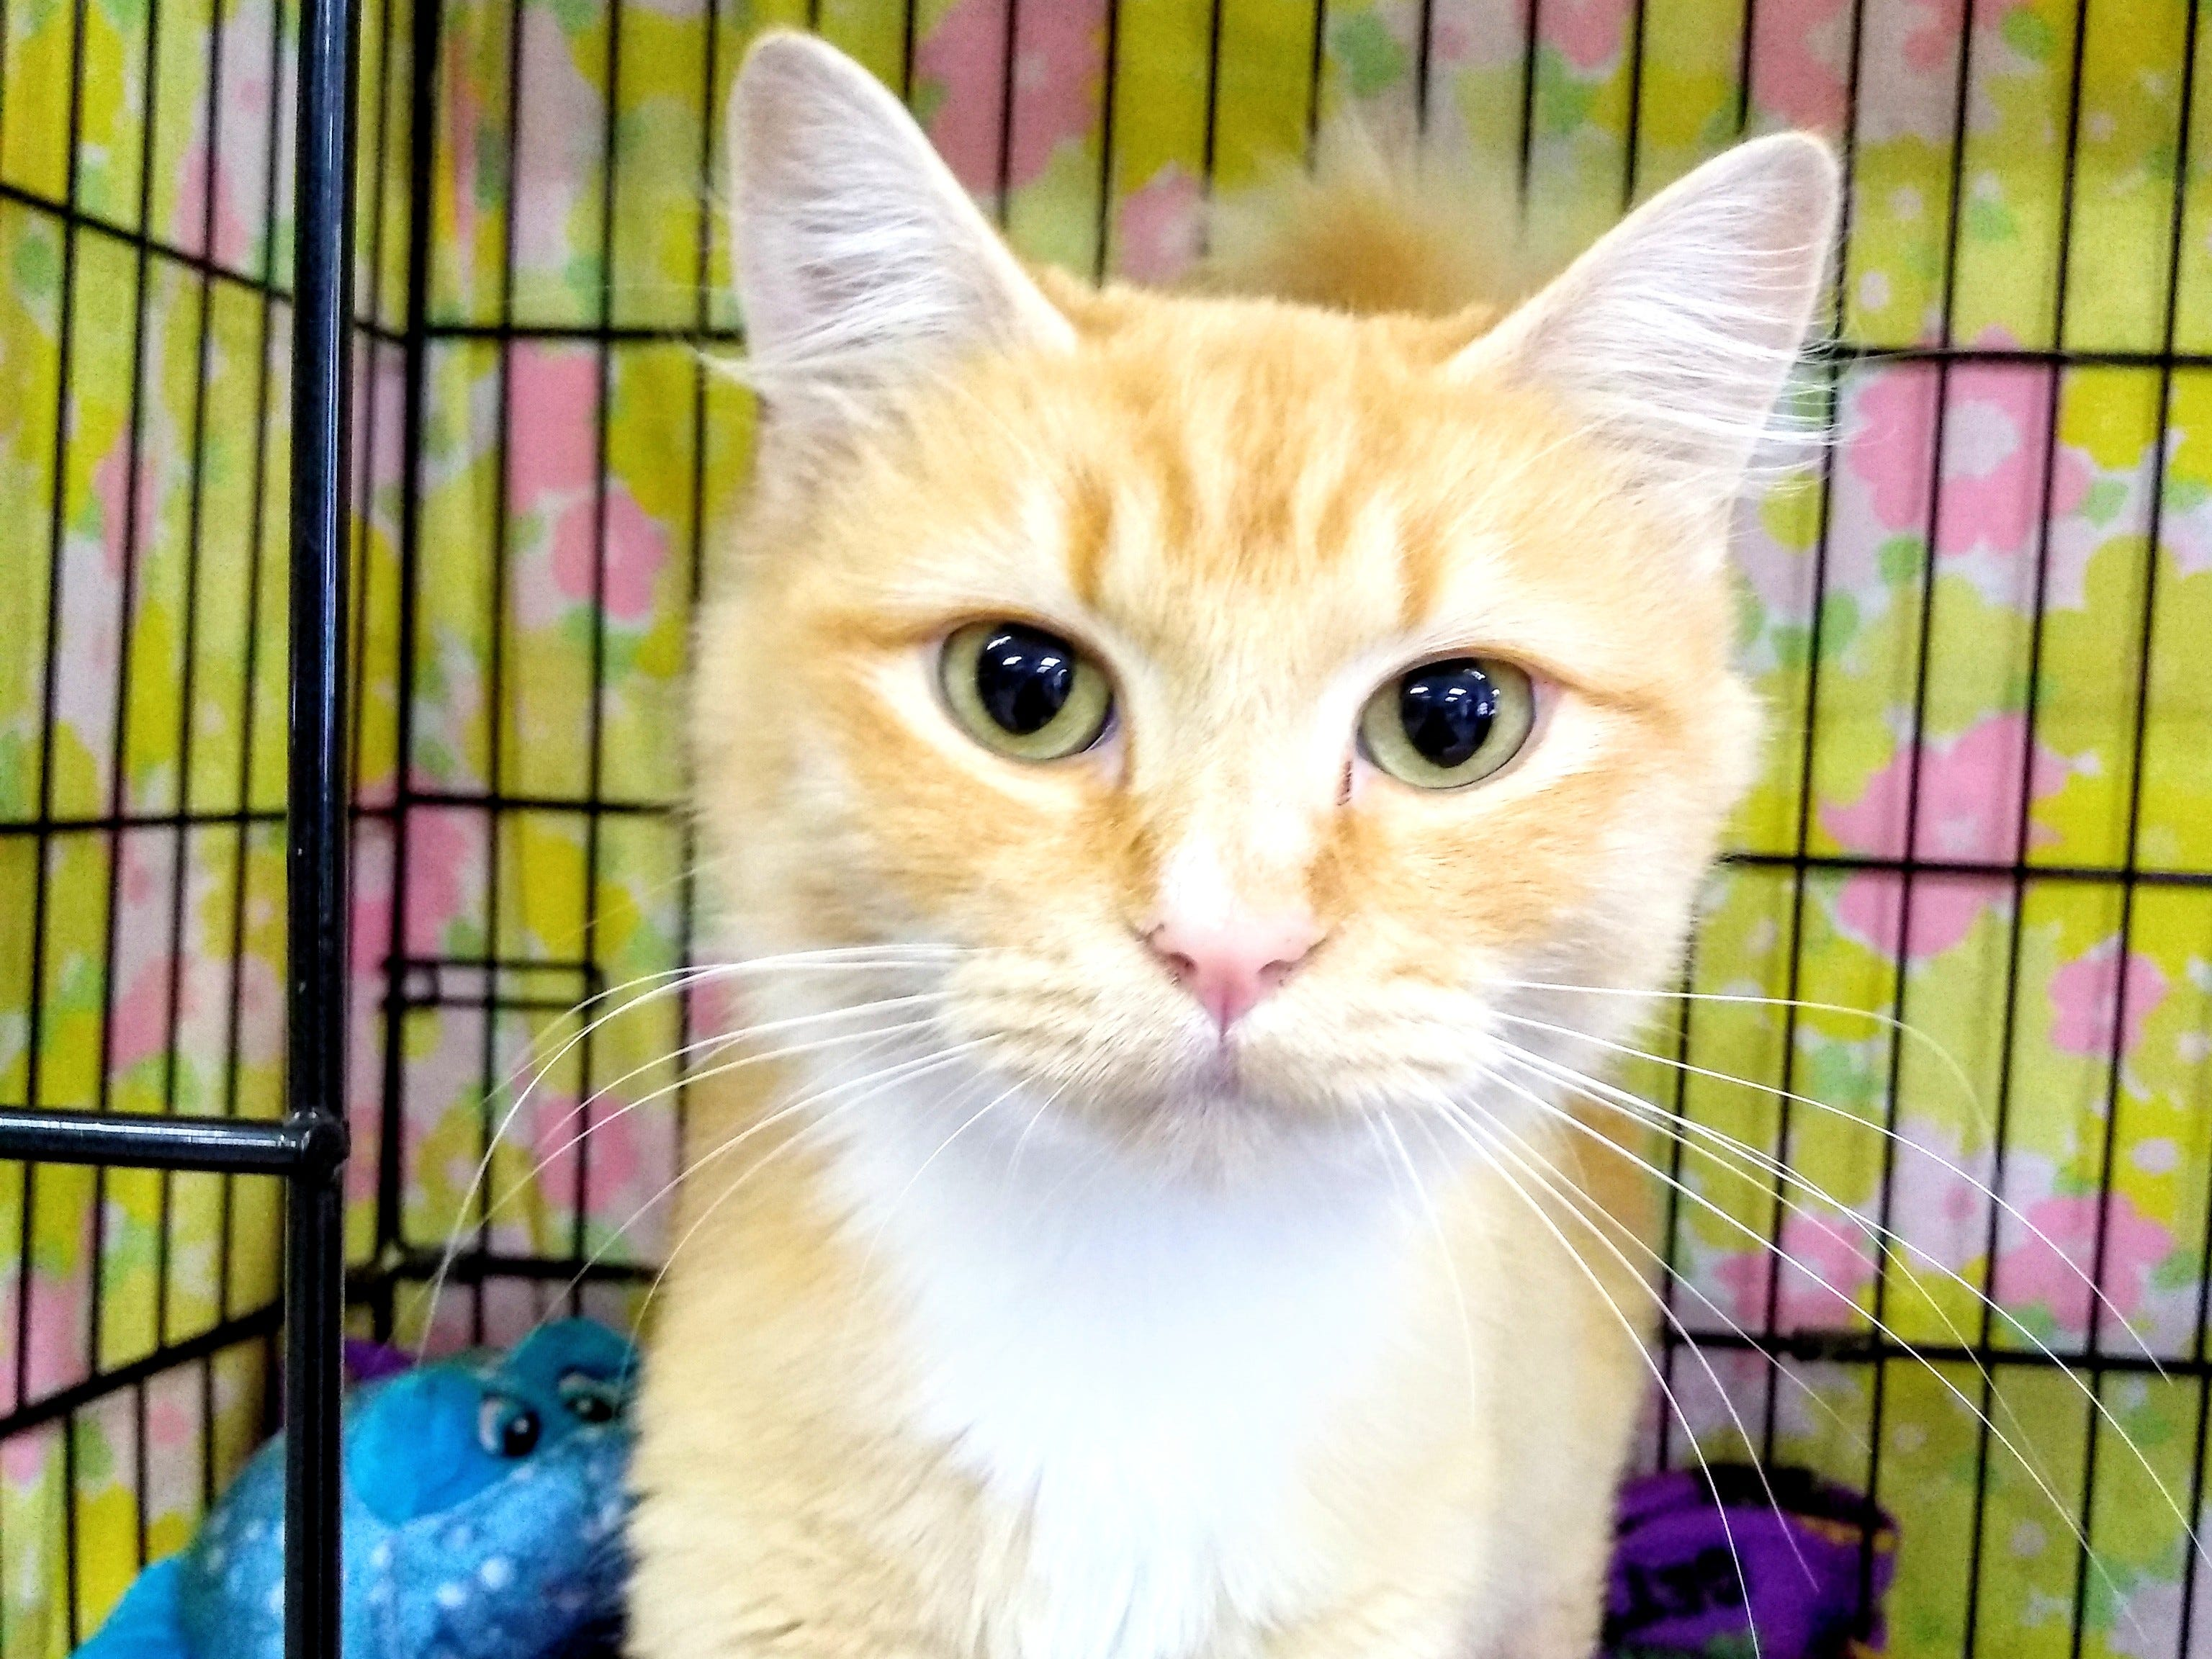 Creamsicle is a beautiful, friendly and affectionate 2-year-old cat. She has very soft fur and is active and energetic. Creamsicle would like a person or family with no other pets. For more information, visit www.sfof.org or call 503-362-5611.